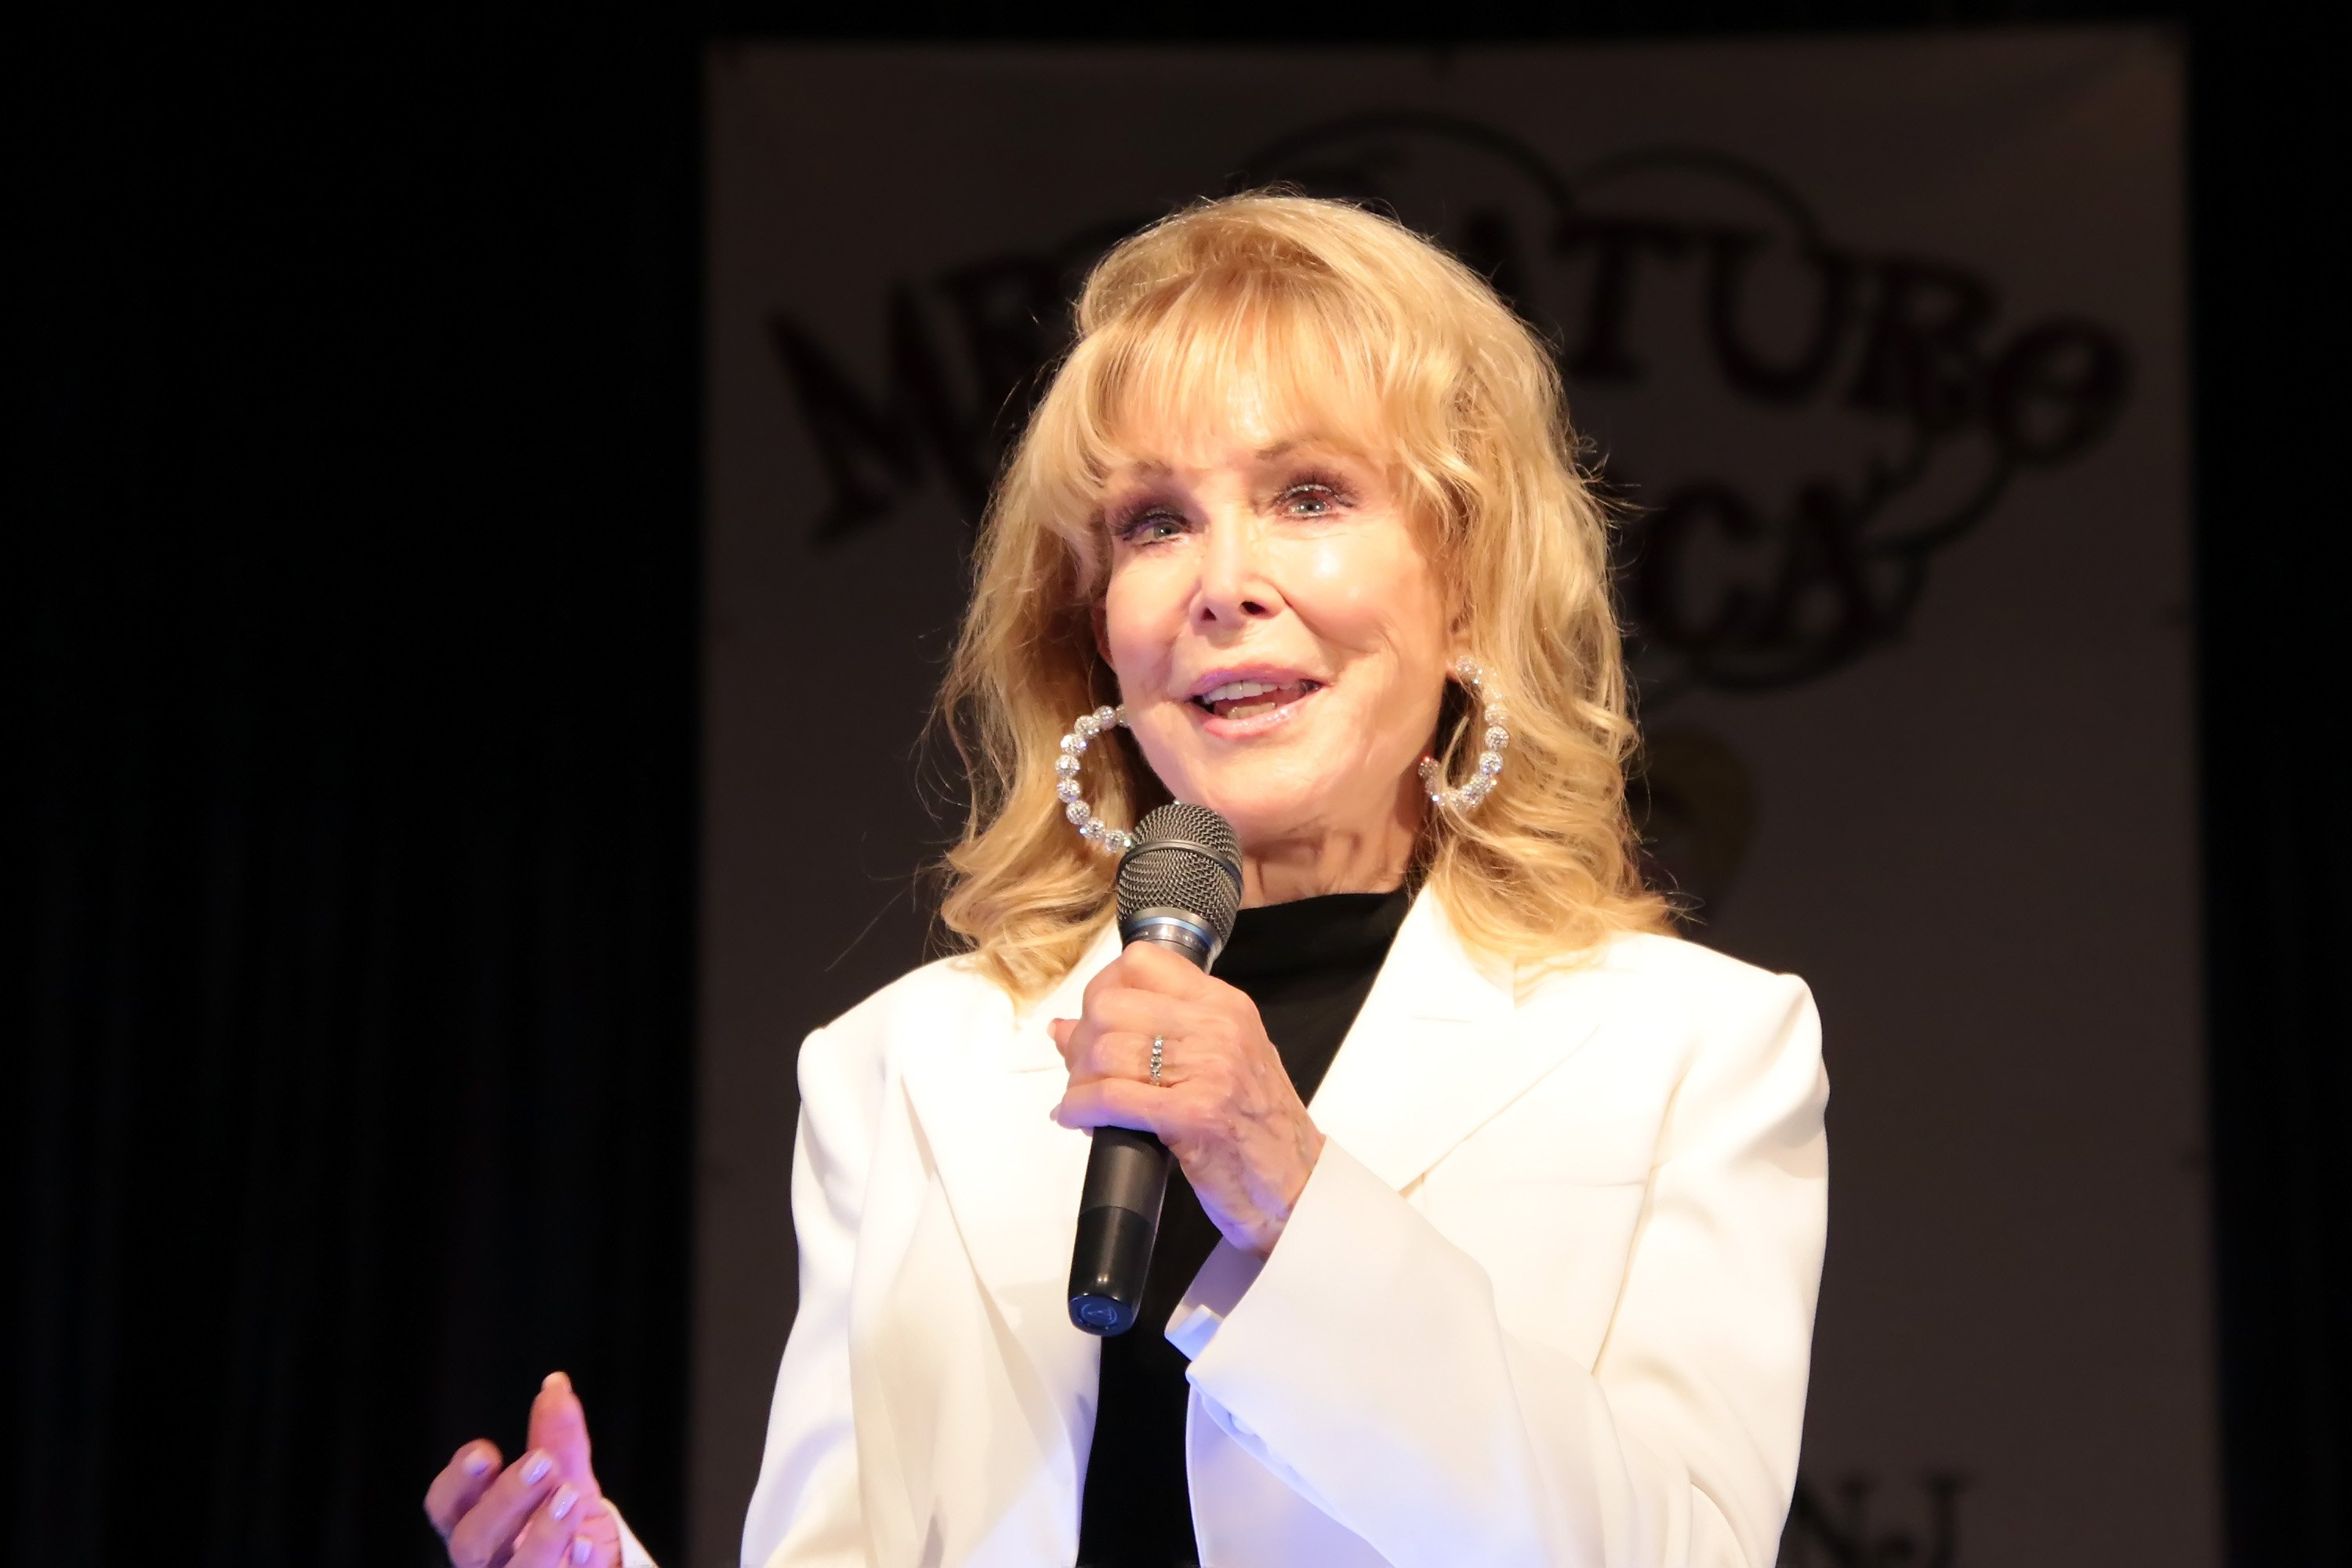 Barbara Eden, Special Guest & Emcee hosts the 2019 Mr. Mature America Pageant at the at Ocean City Music Pier on April 13, 2019  